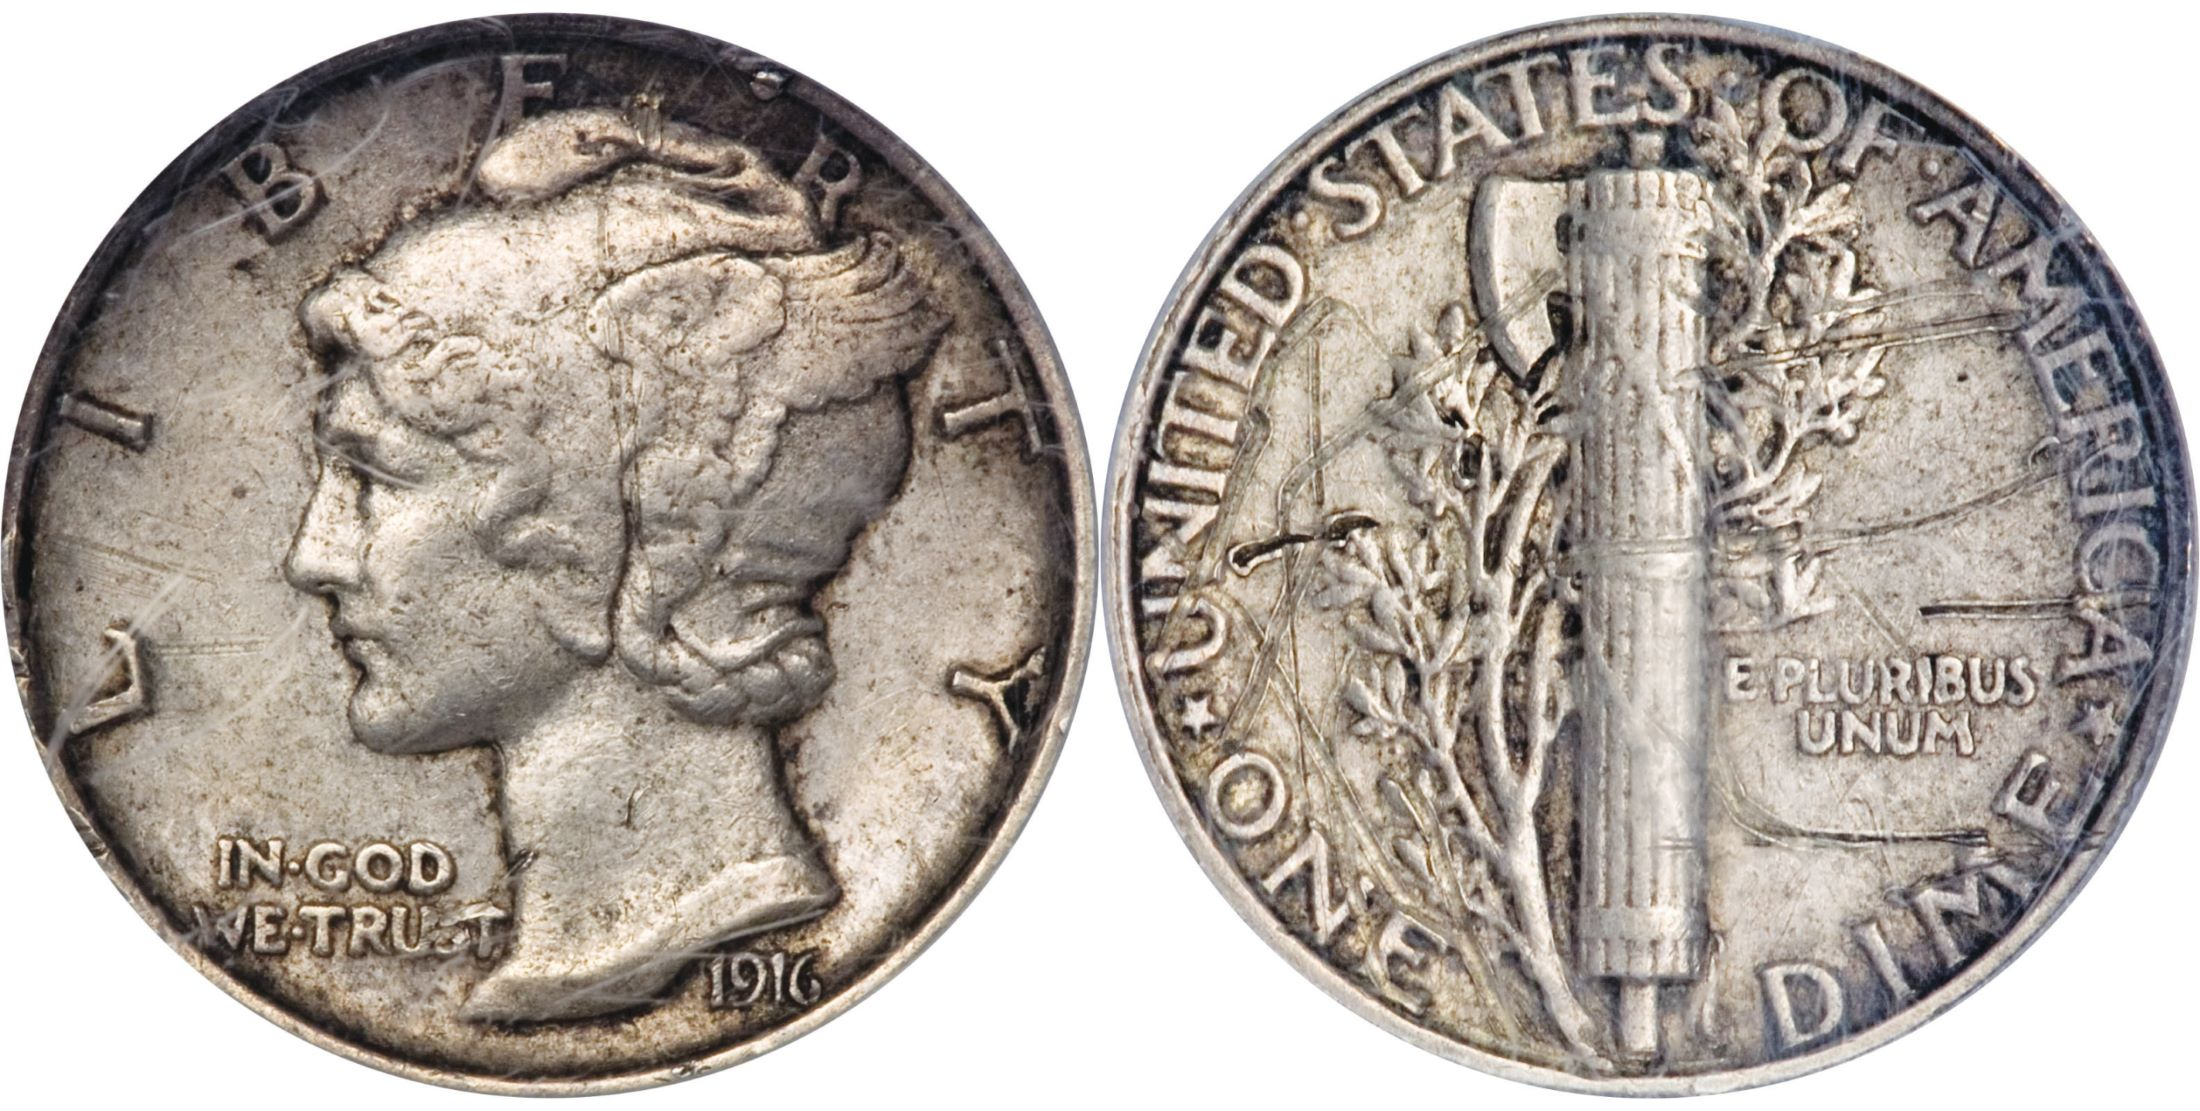 """Image courtesy of <a href=""""http://www.ha.com"""" target=""""_blank"""">Heritage Numismatic Auctions</a>"""